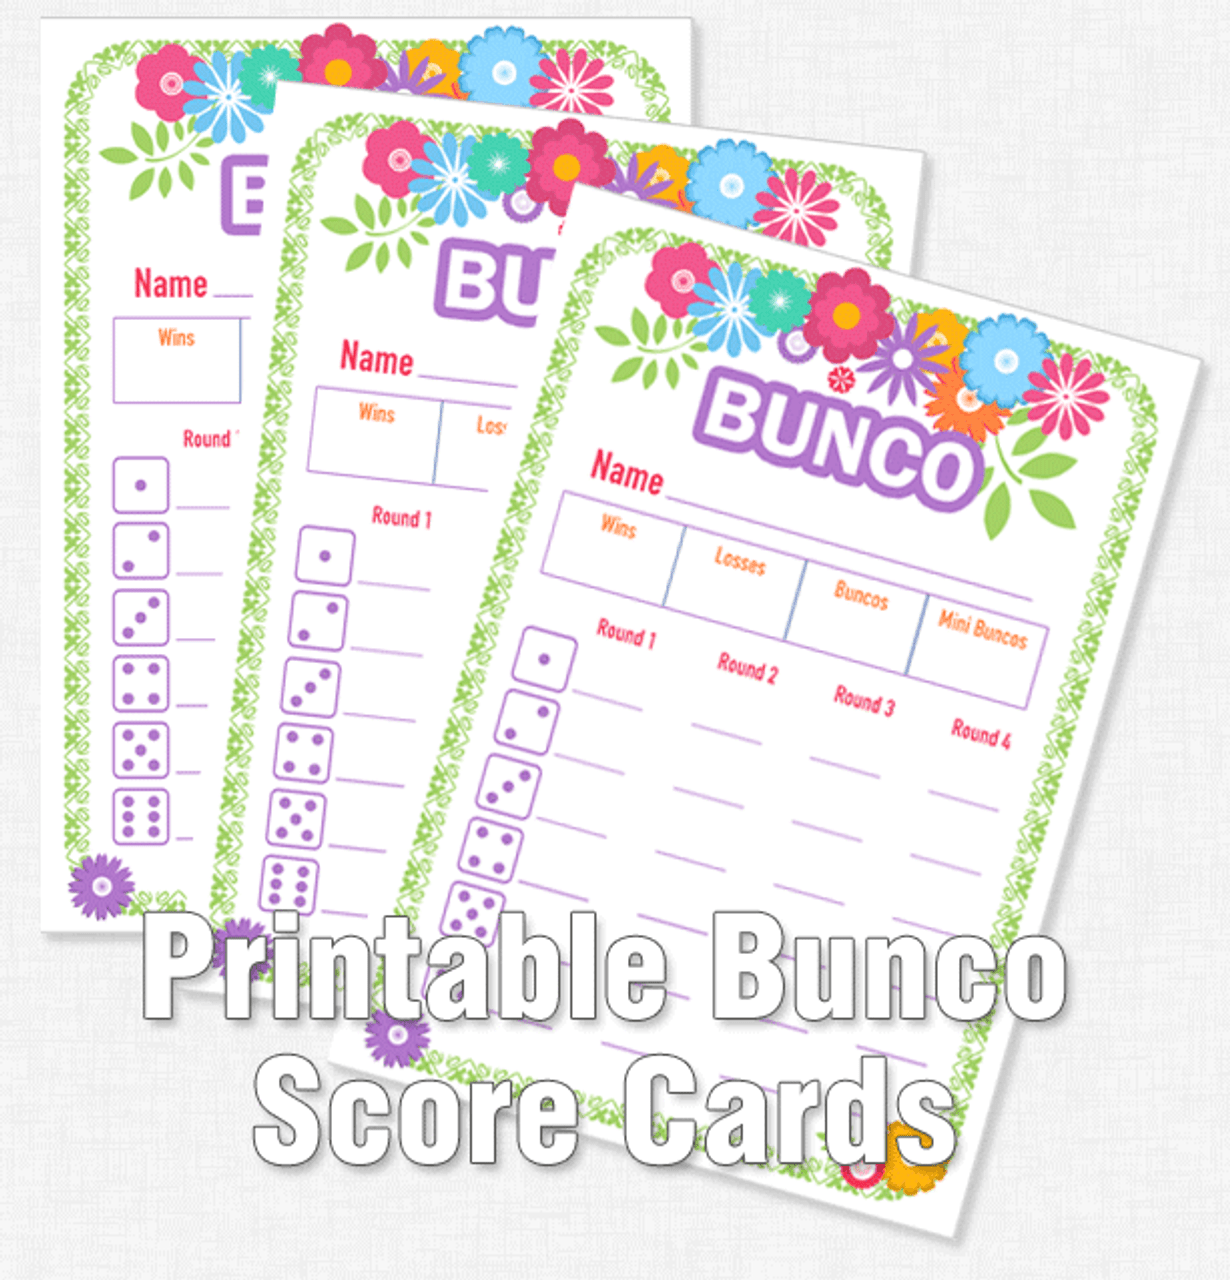 graphic relating to Free Printable Bunco Score Sheets known as Printable Flower Bunco Rating Playing cards